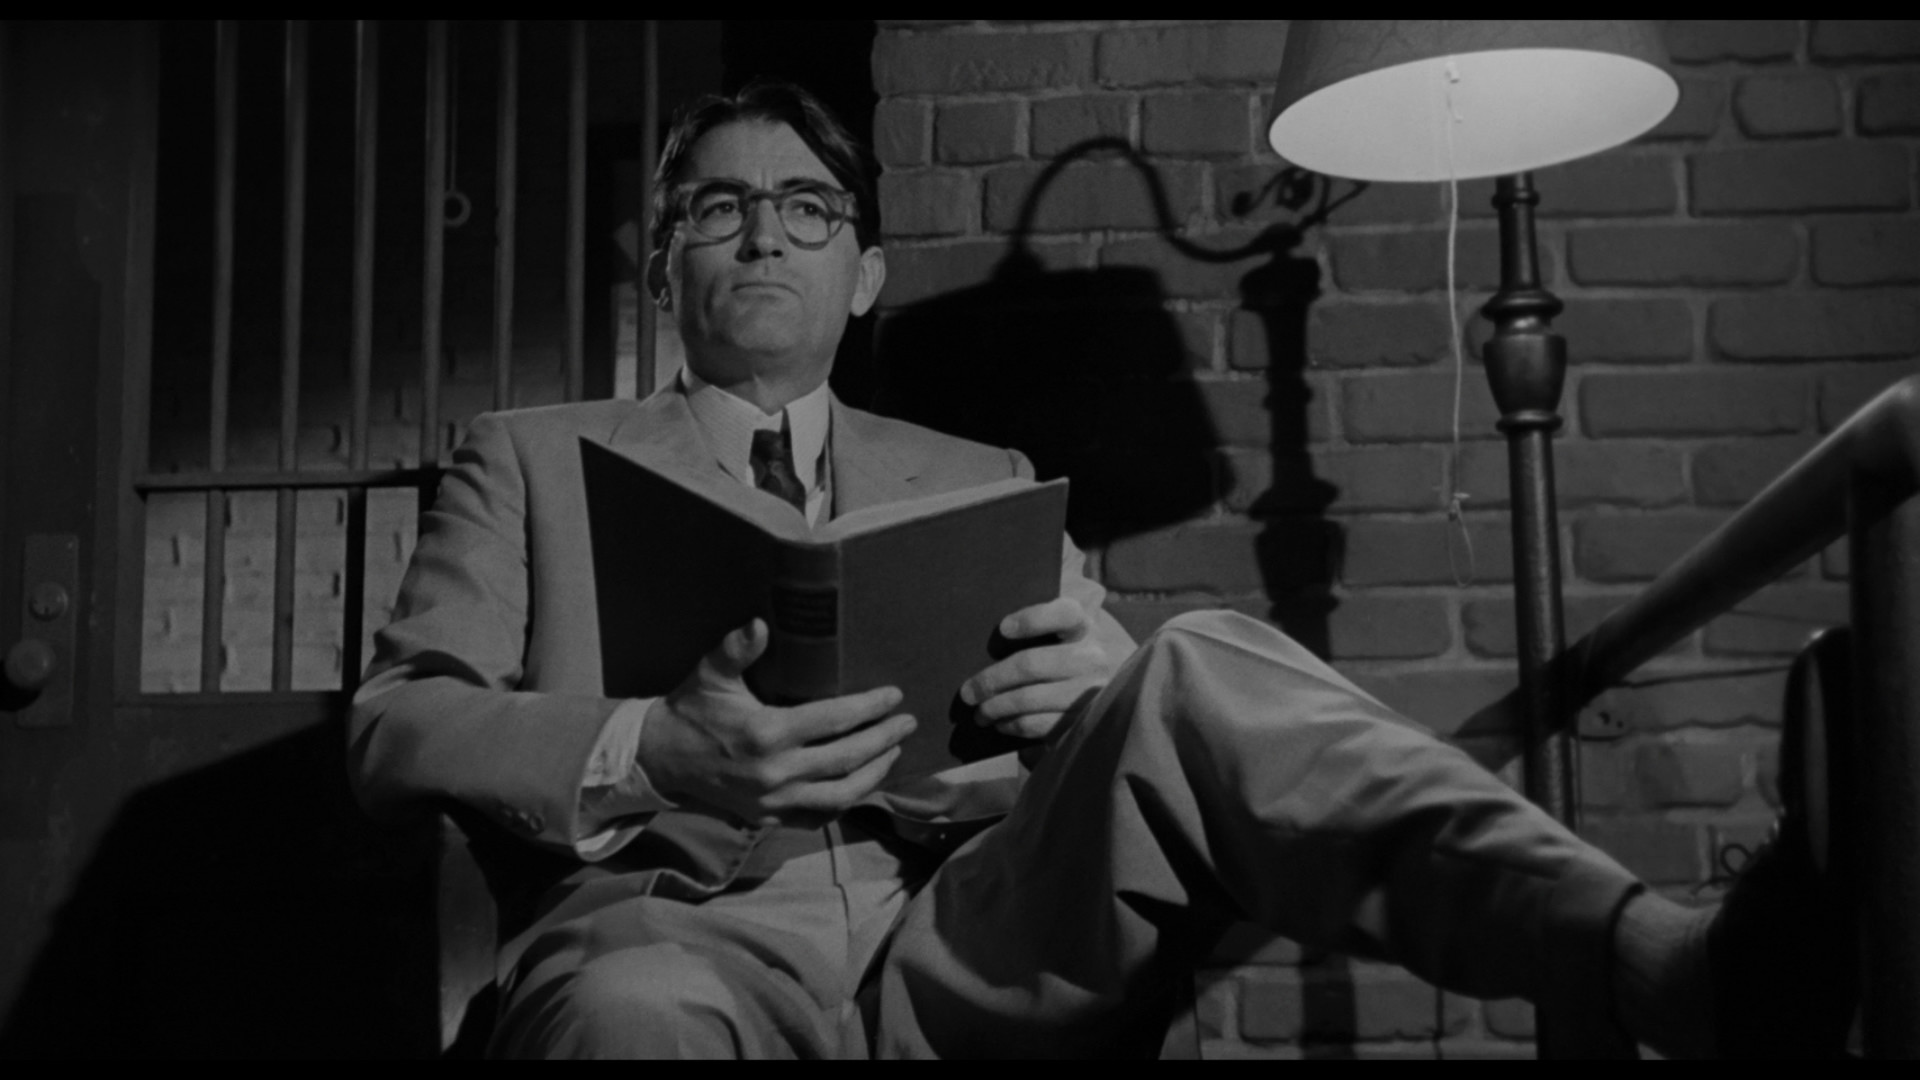 tkam atticus good parent How would you describe atticus as a parent how does he treat his children what kind of things does he want to teach them specific examples if possible.